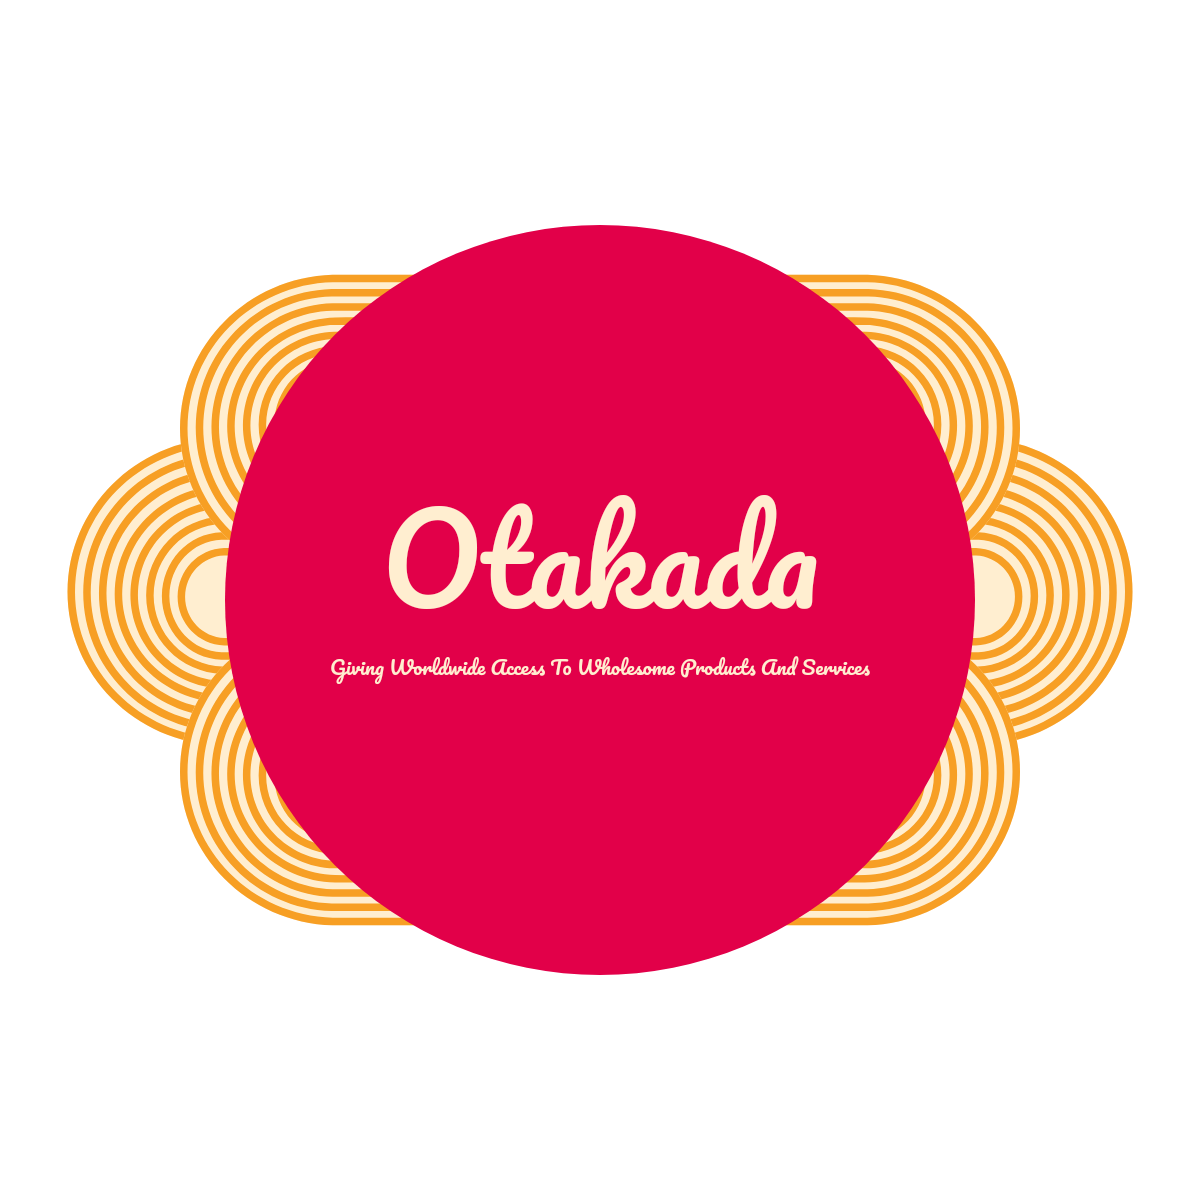 Otakada.org – Bringing You Over 2,000,000 Wholesome Products and Services For The Christian Community all in one place